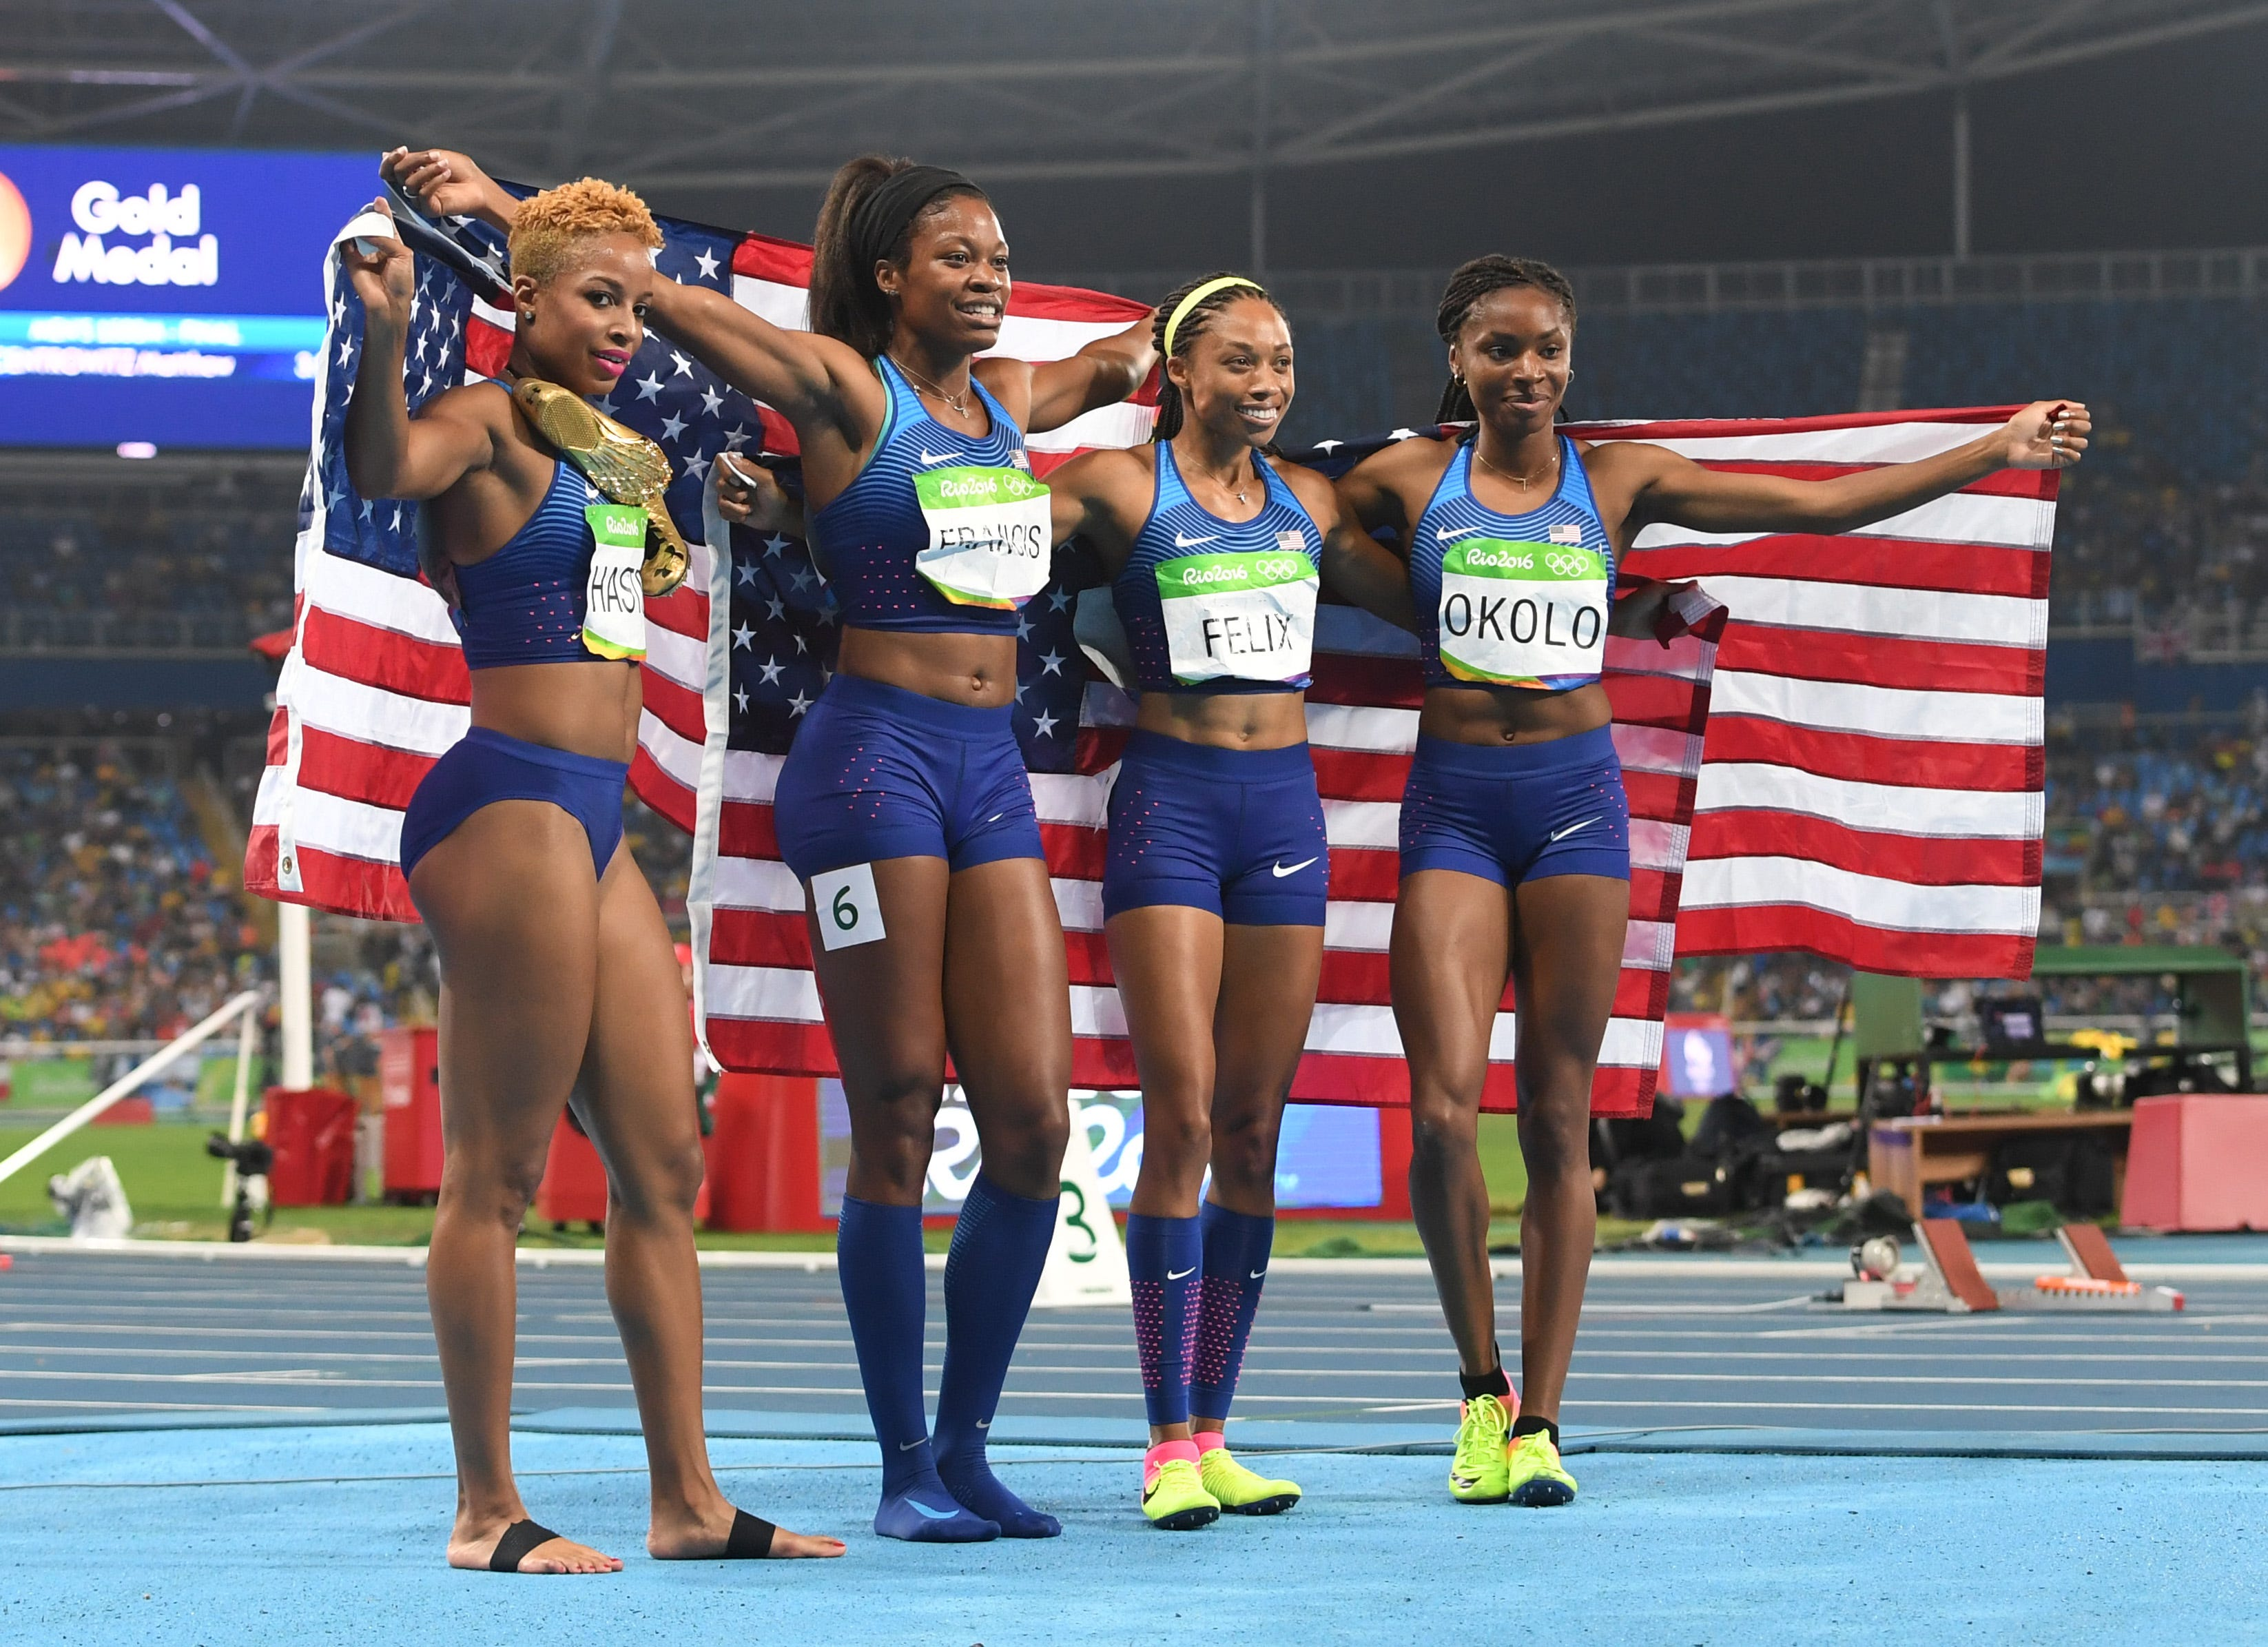 Communication on this topic: Siri Neal, allyson-felix-6-olympic-medals/